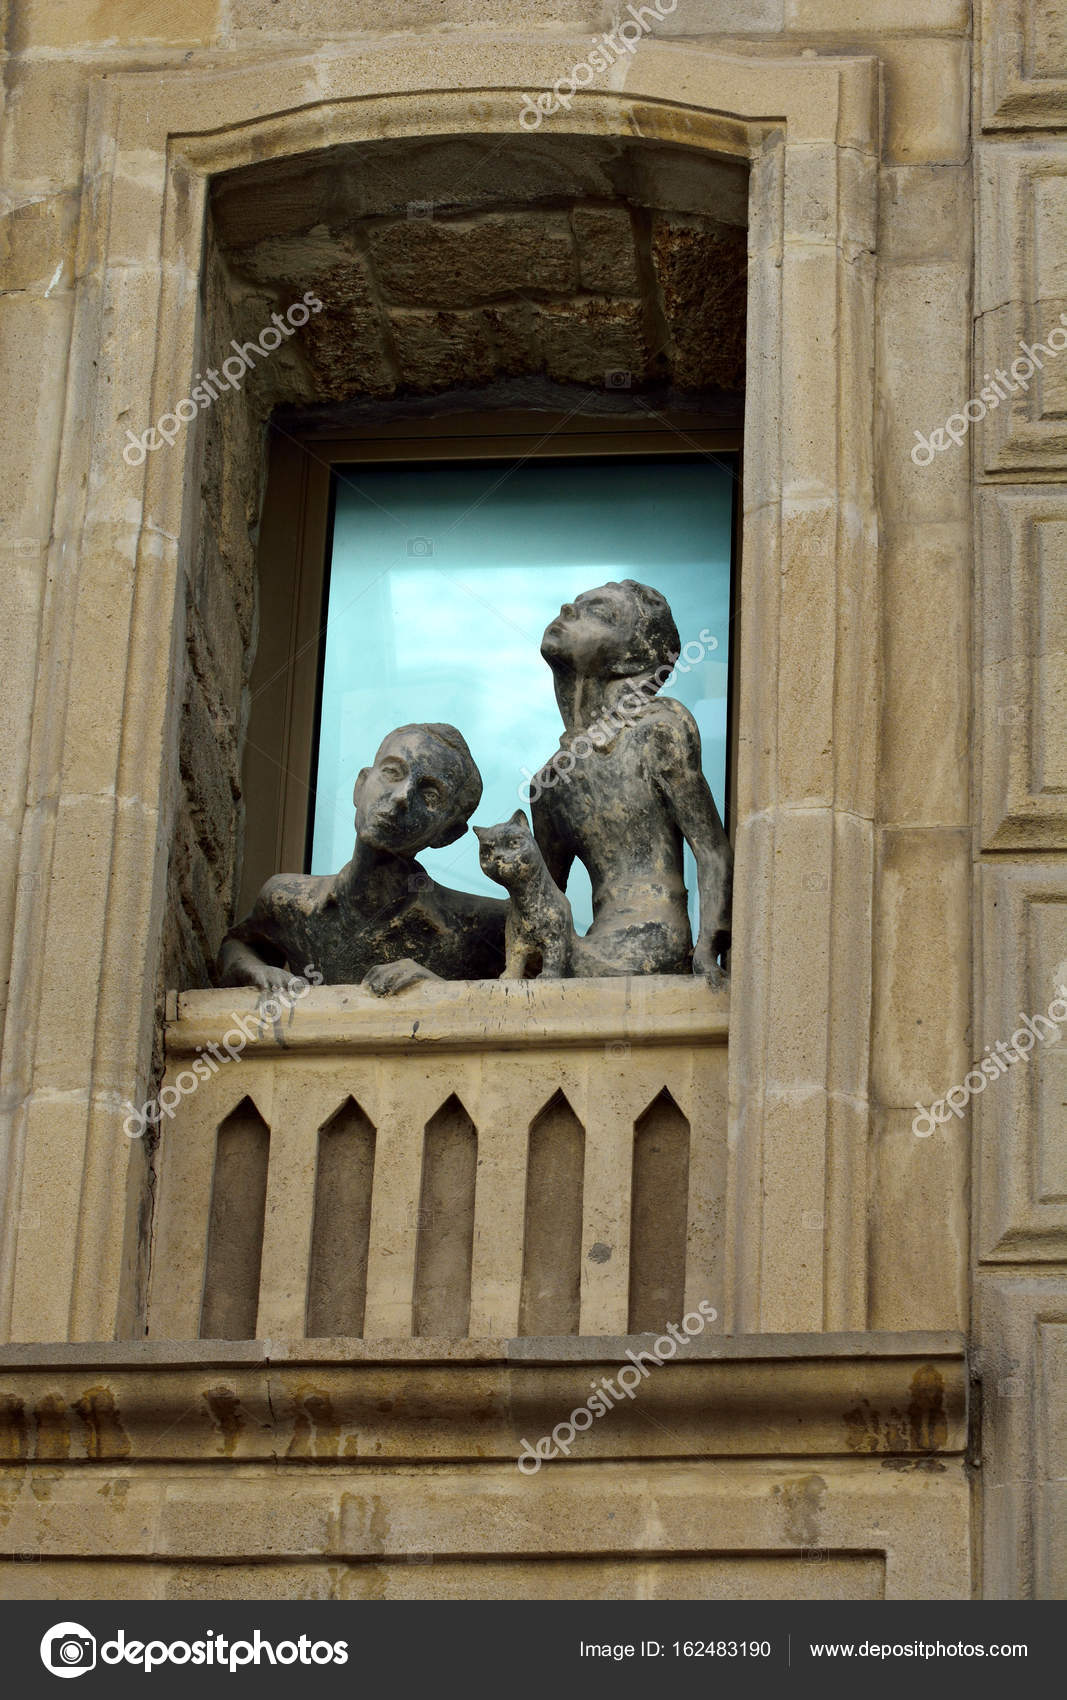 Sculpture of a girl, a boy and a cat looking out of a window in Old Town quarter of Baku. — Foto Stock